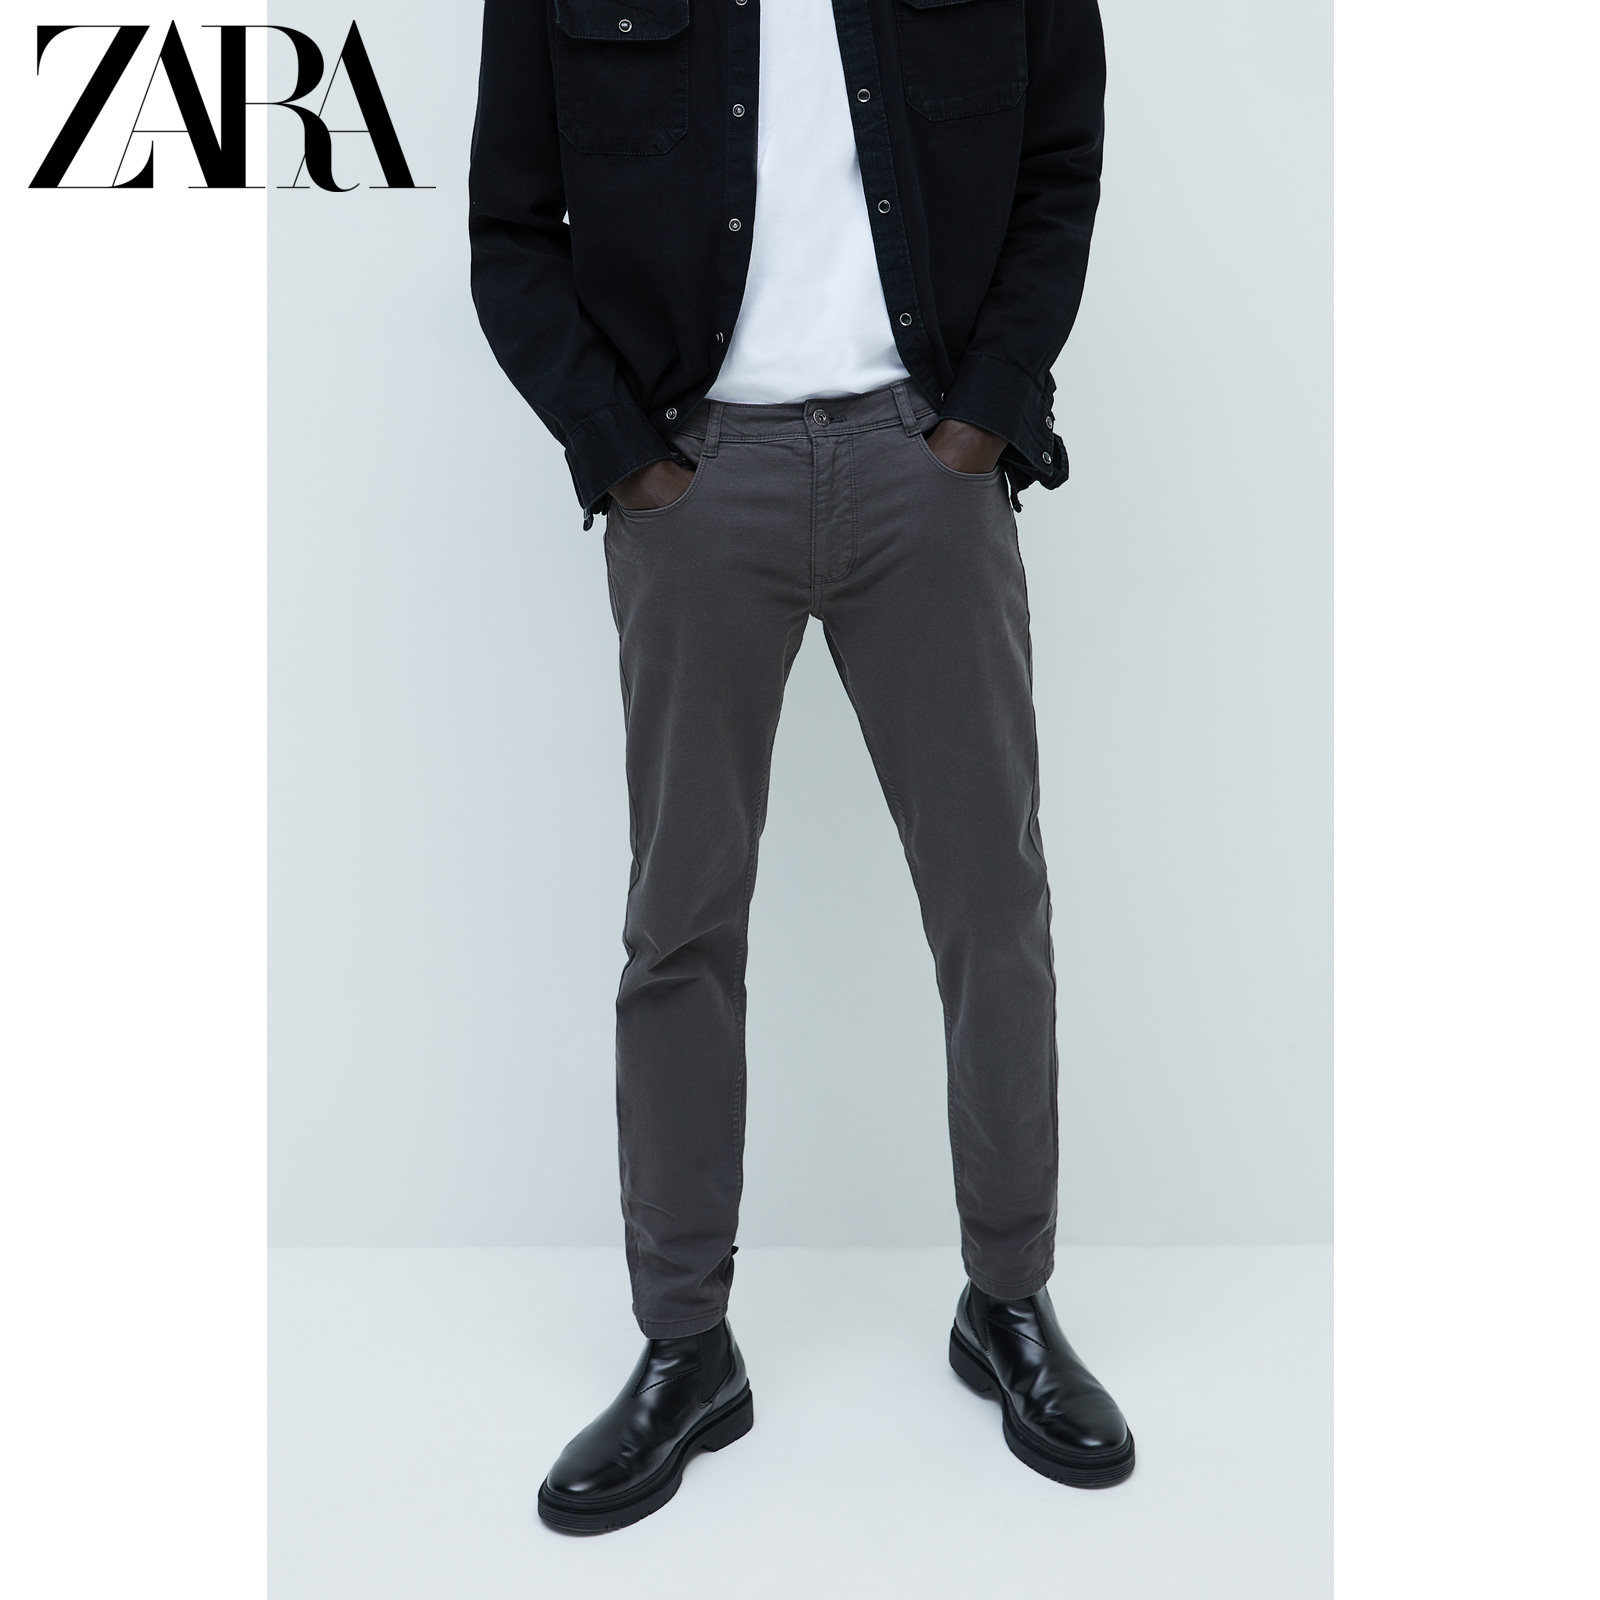 Zara new men's basic slim jeans 06786470802